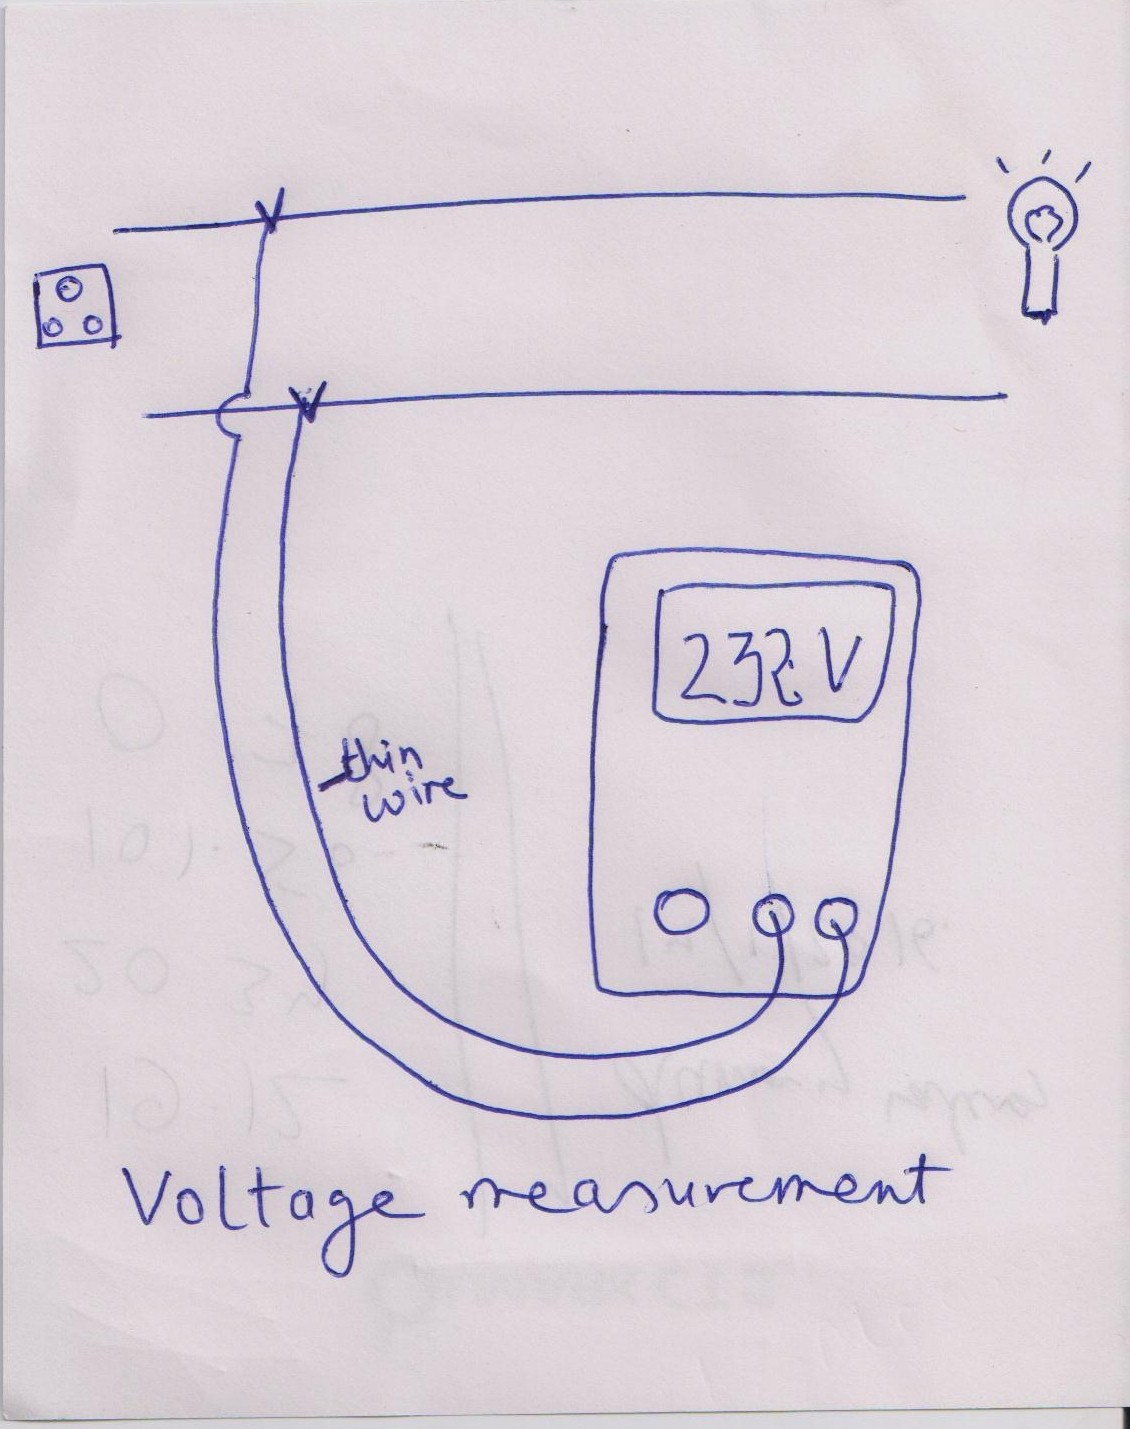 Voltage Measurement Led Driver Testing With Thd Laptop Multimeter Tests Checking And Short Circuits